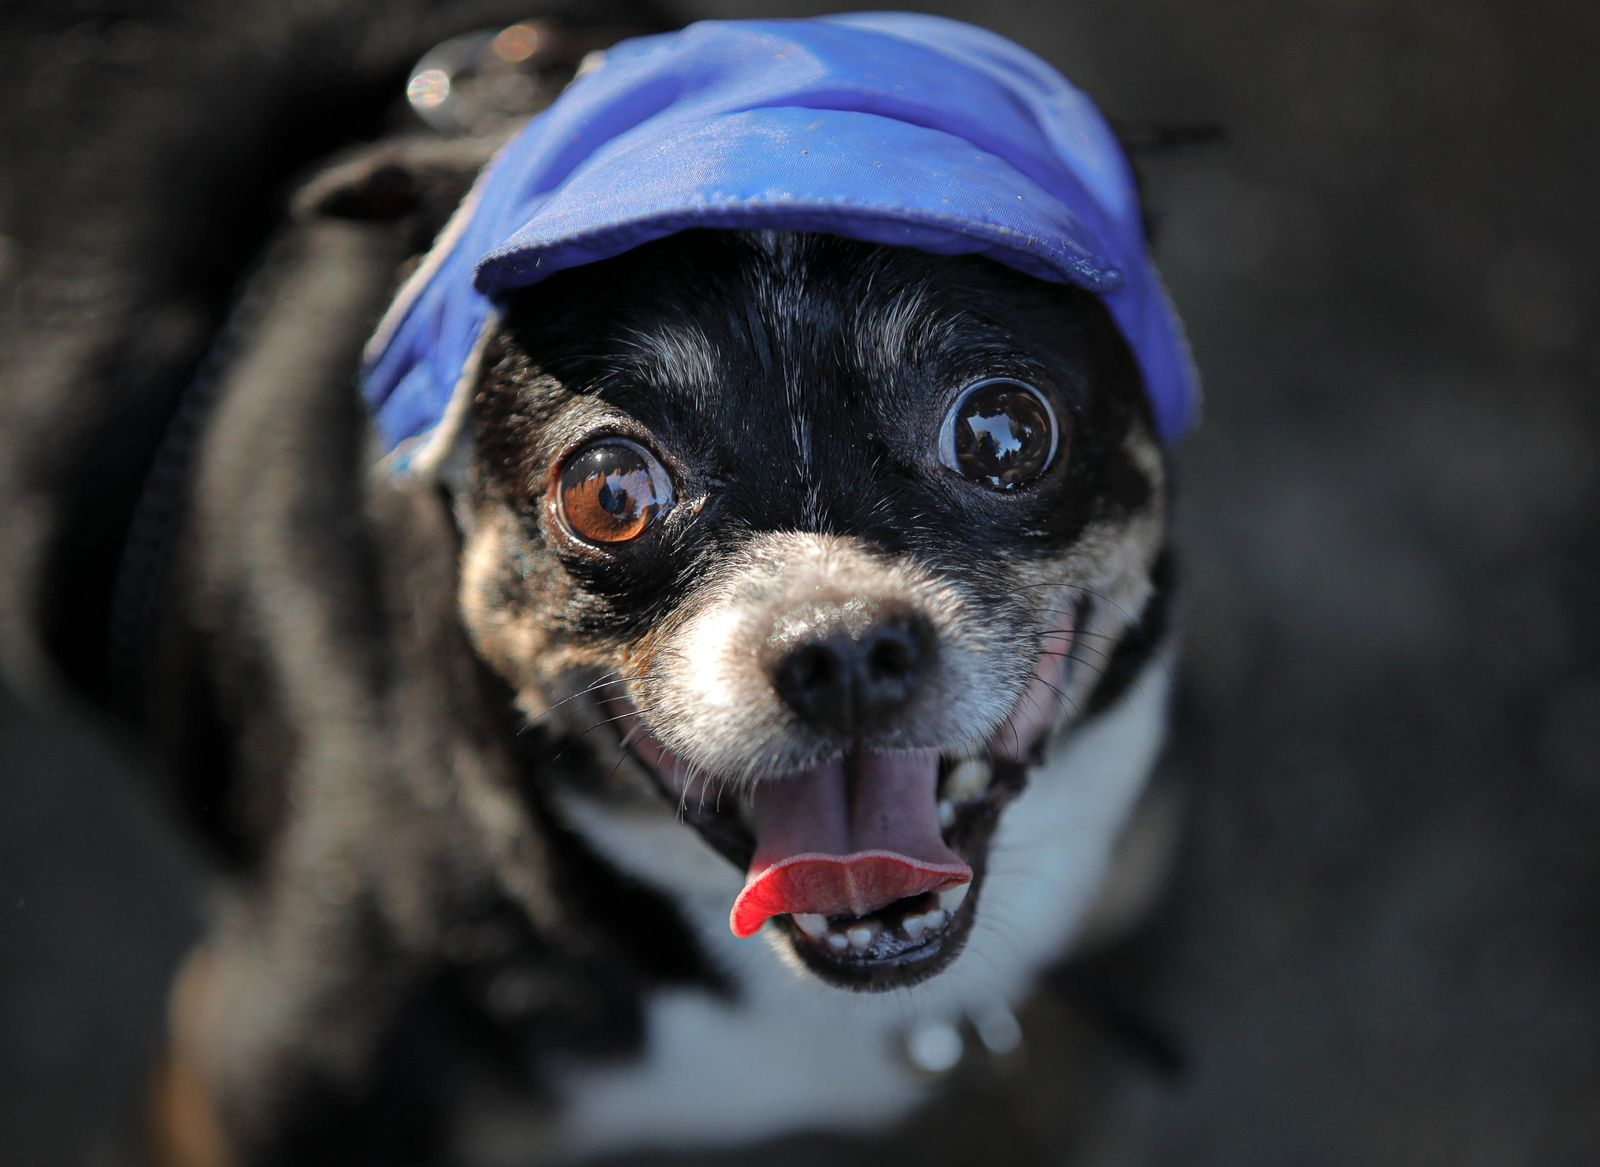 Miky the dog, wearing a hat for sun protection, waits to be sprinkled with water by its owner while on a walk in a park as temperatures reached 34 degrees Celsius (93.2 Fahrenheit) in Bucharest, Romania, Sunday, Aug. 11, 2019. The national weather authority issued a heat wave warning with temperatures expected to rise above 35 degrees Centigrade (95 Fahrenheit) in the shade in the coming days.(AP Photo/Vadim Ghirda)